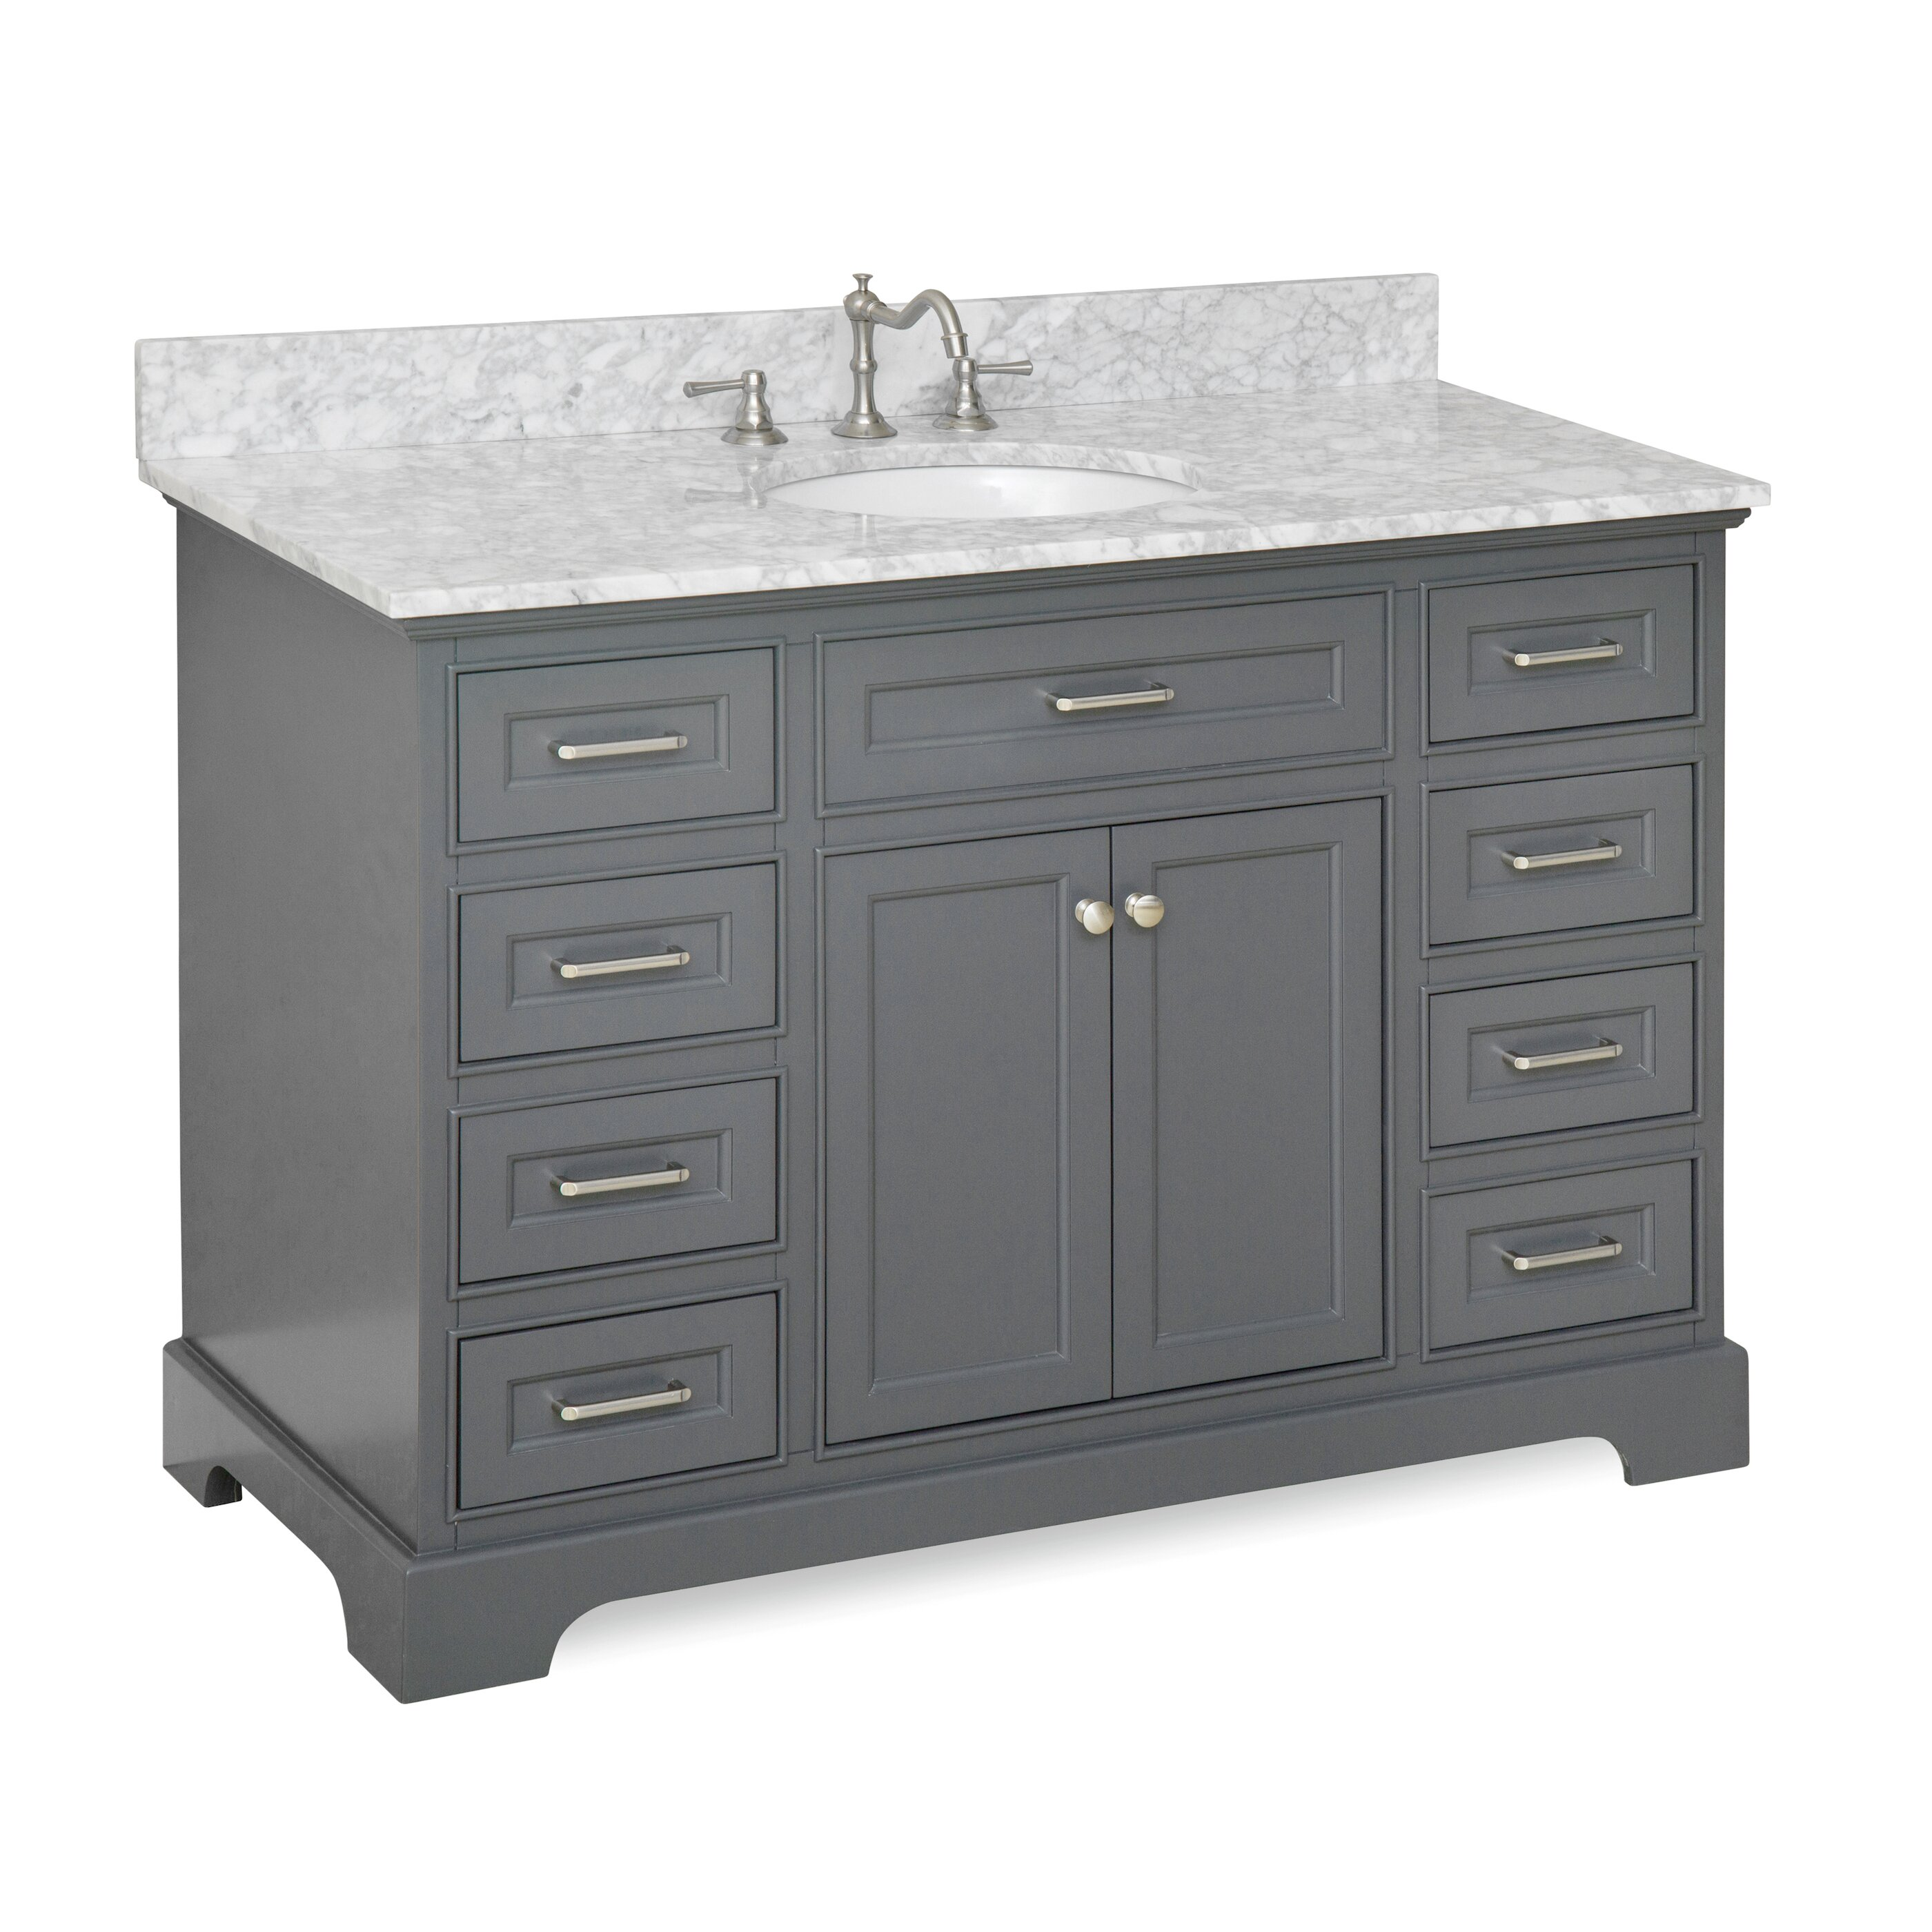 kbc aria 48 single vanity set reviews wayfair. Black Bedroom Furniture Sets. Home Design Ideas